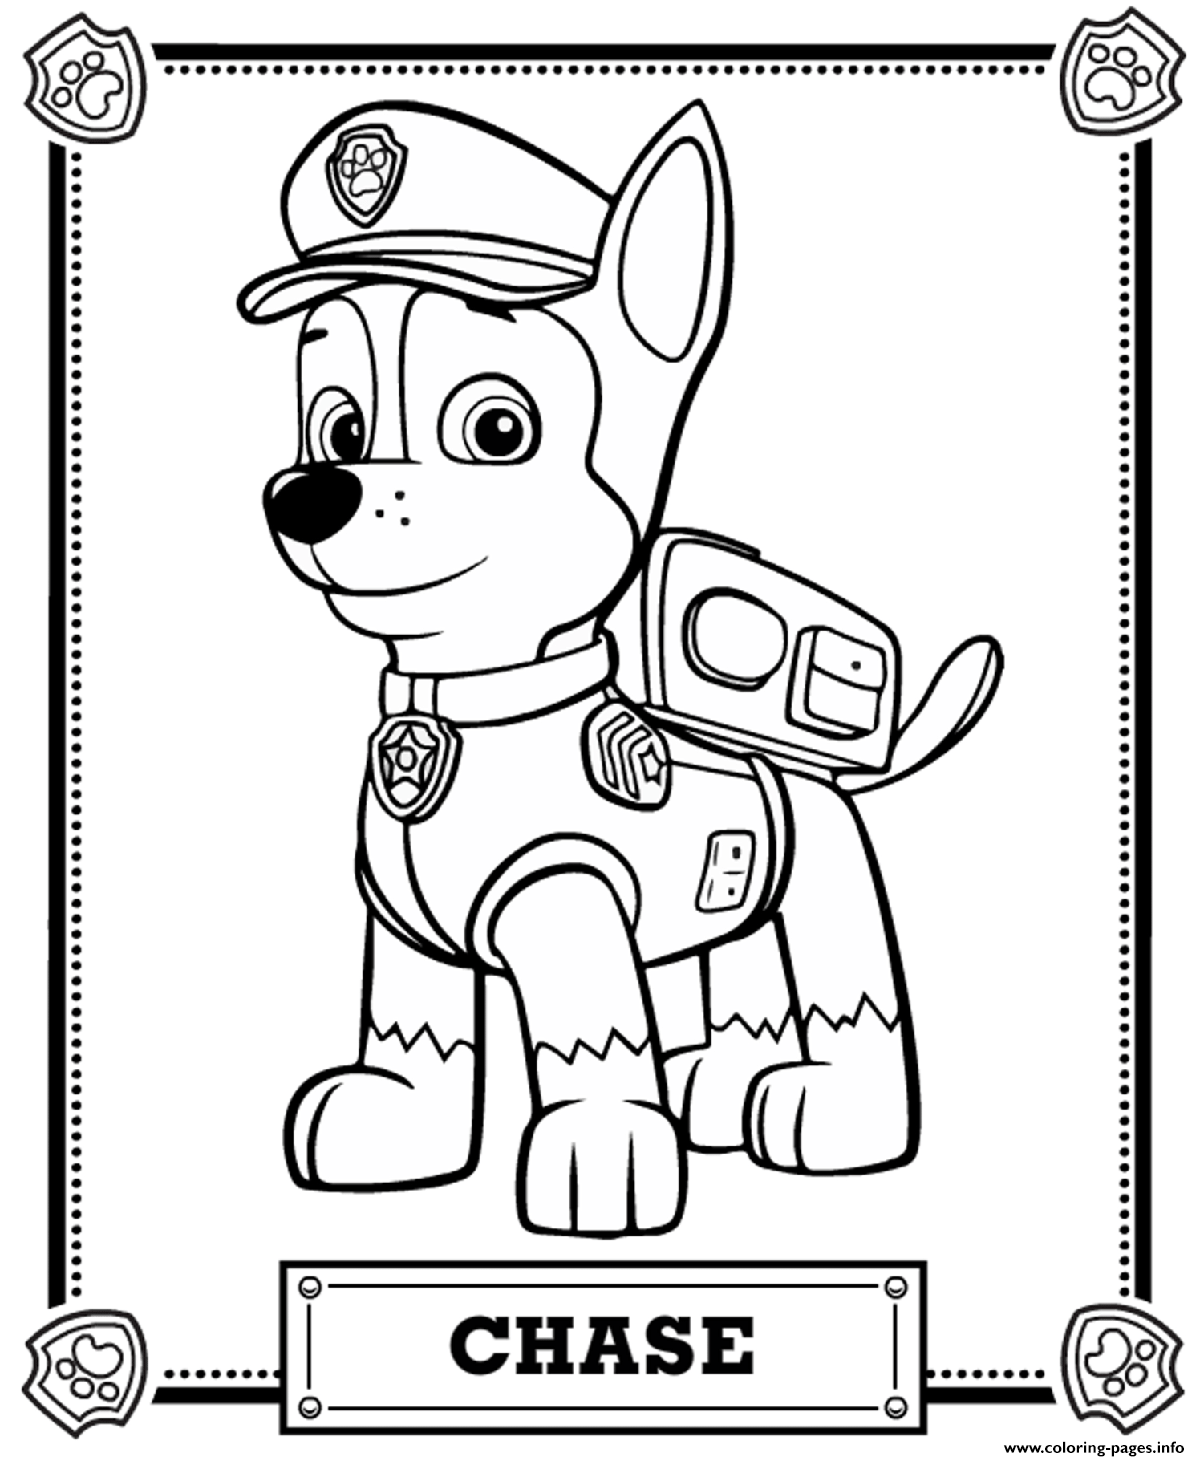 Print Paw Patrol Chase Coloring Pages Paw Patrol Coloring Pages Paw Patrol Coloring Chase Paw Patrol